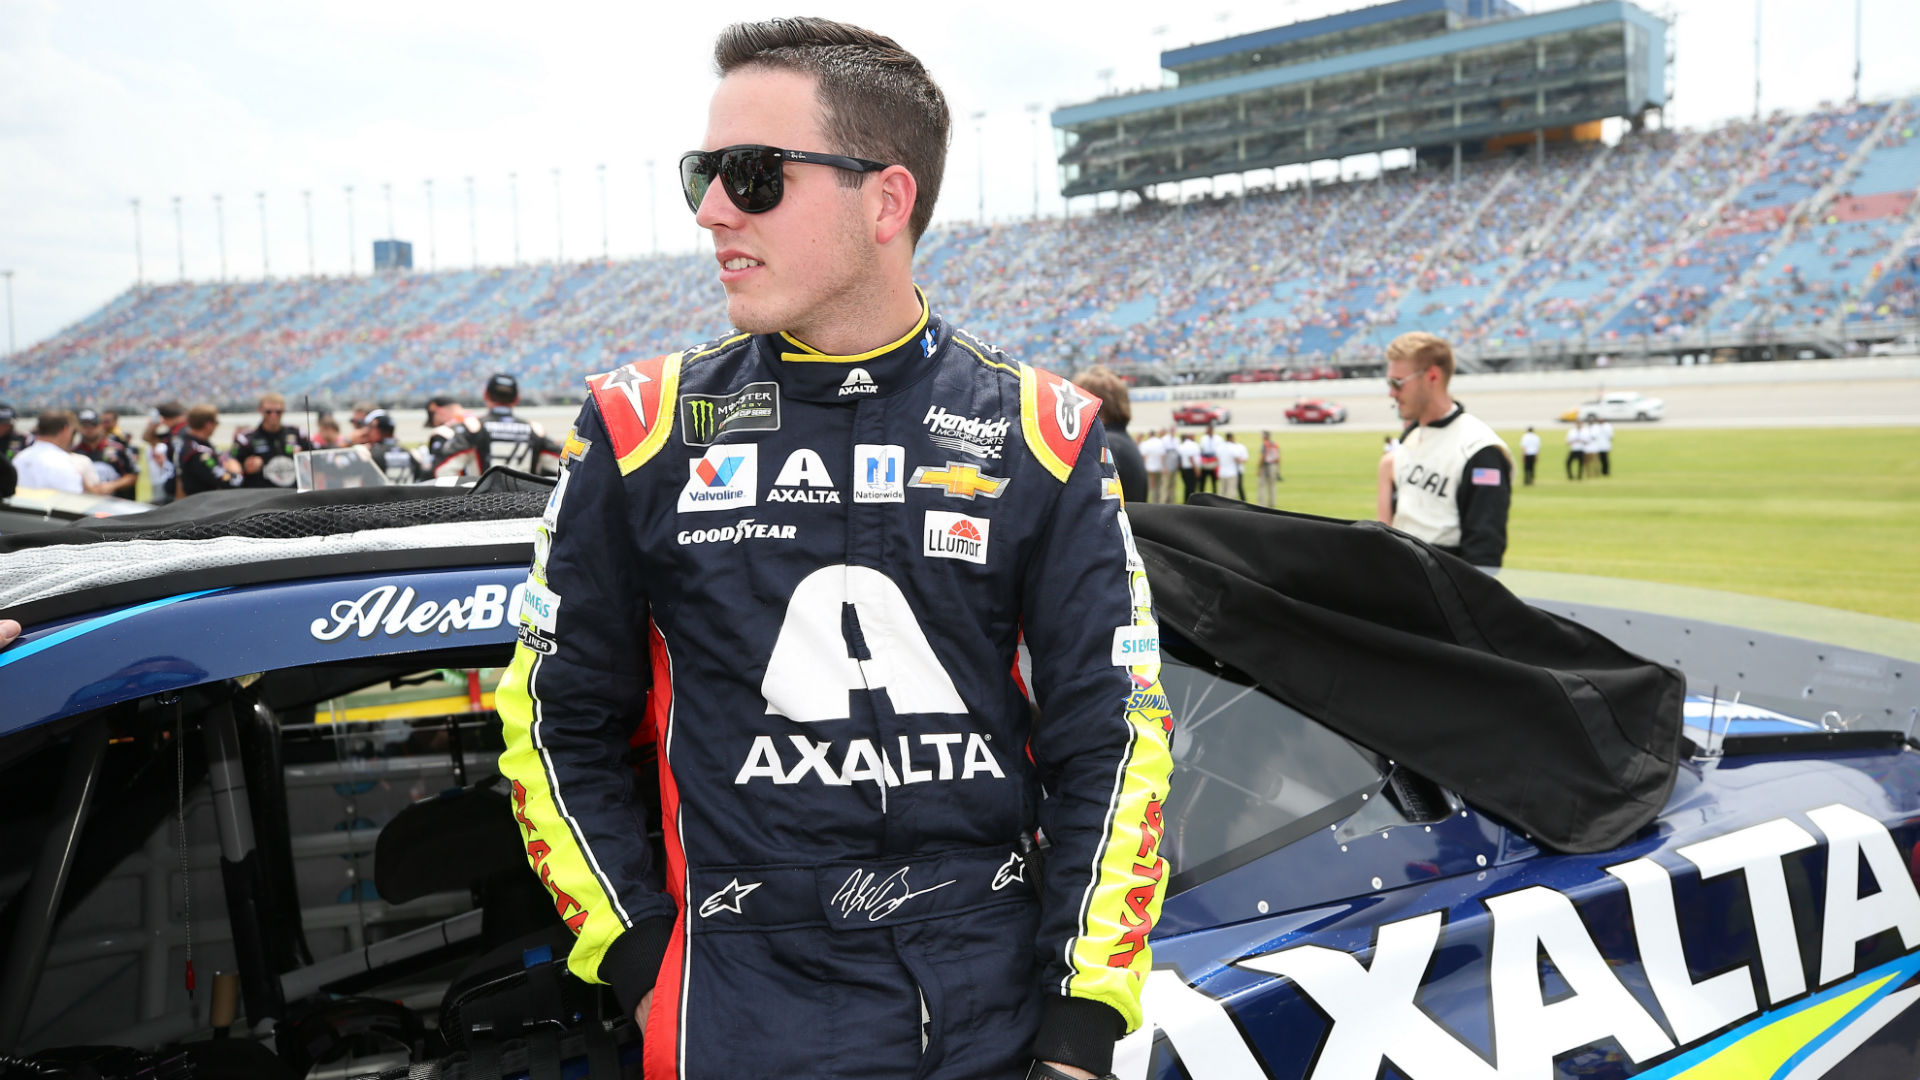 WATCH: Alex Bowman's drive shaft blows up during qualifying